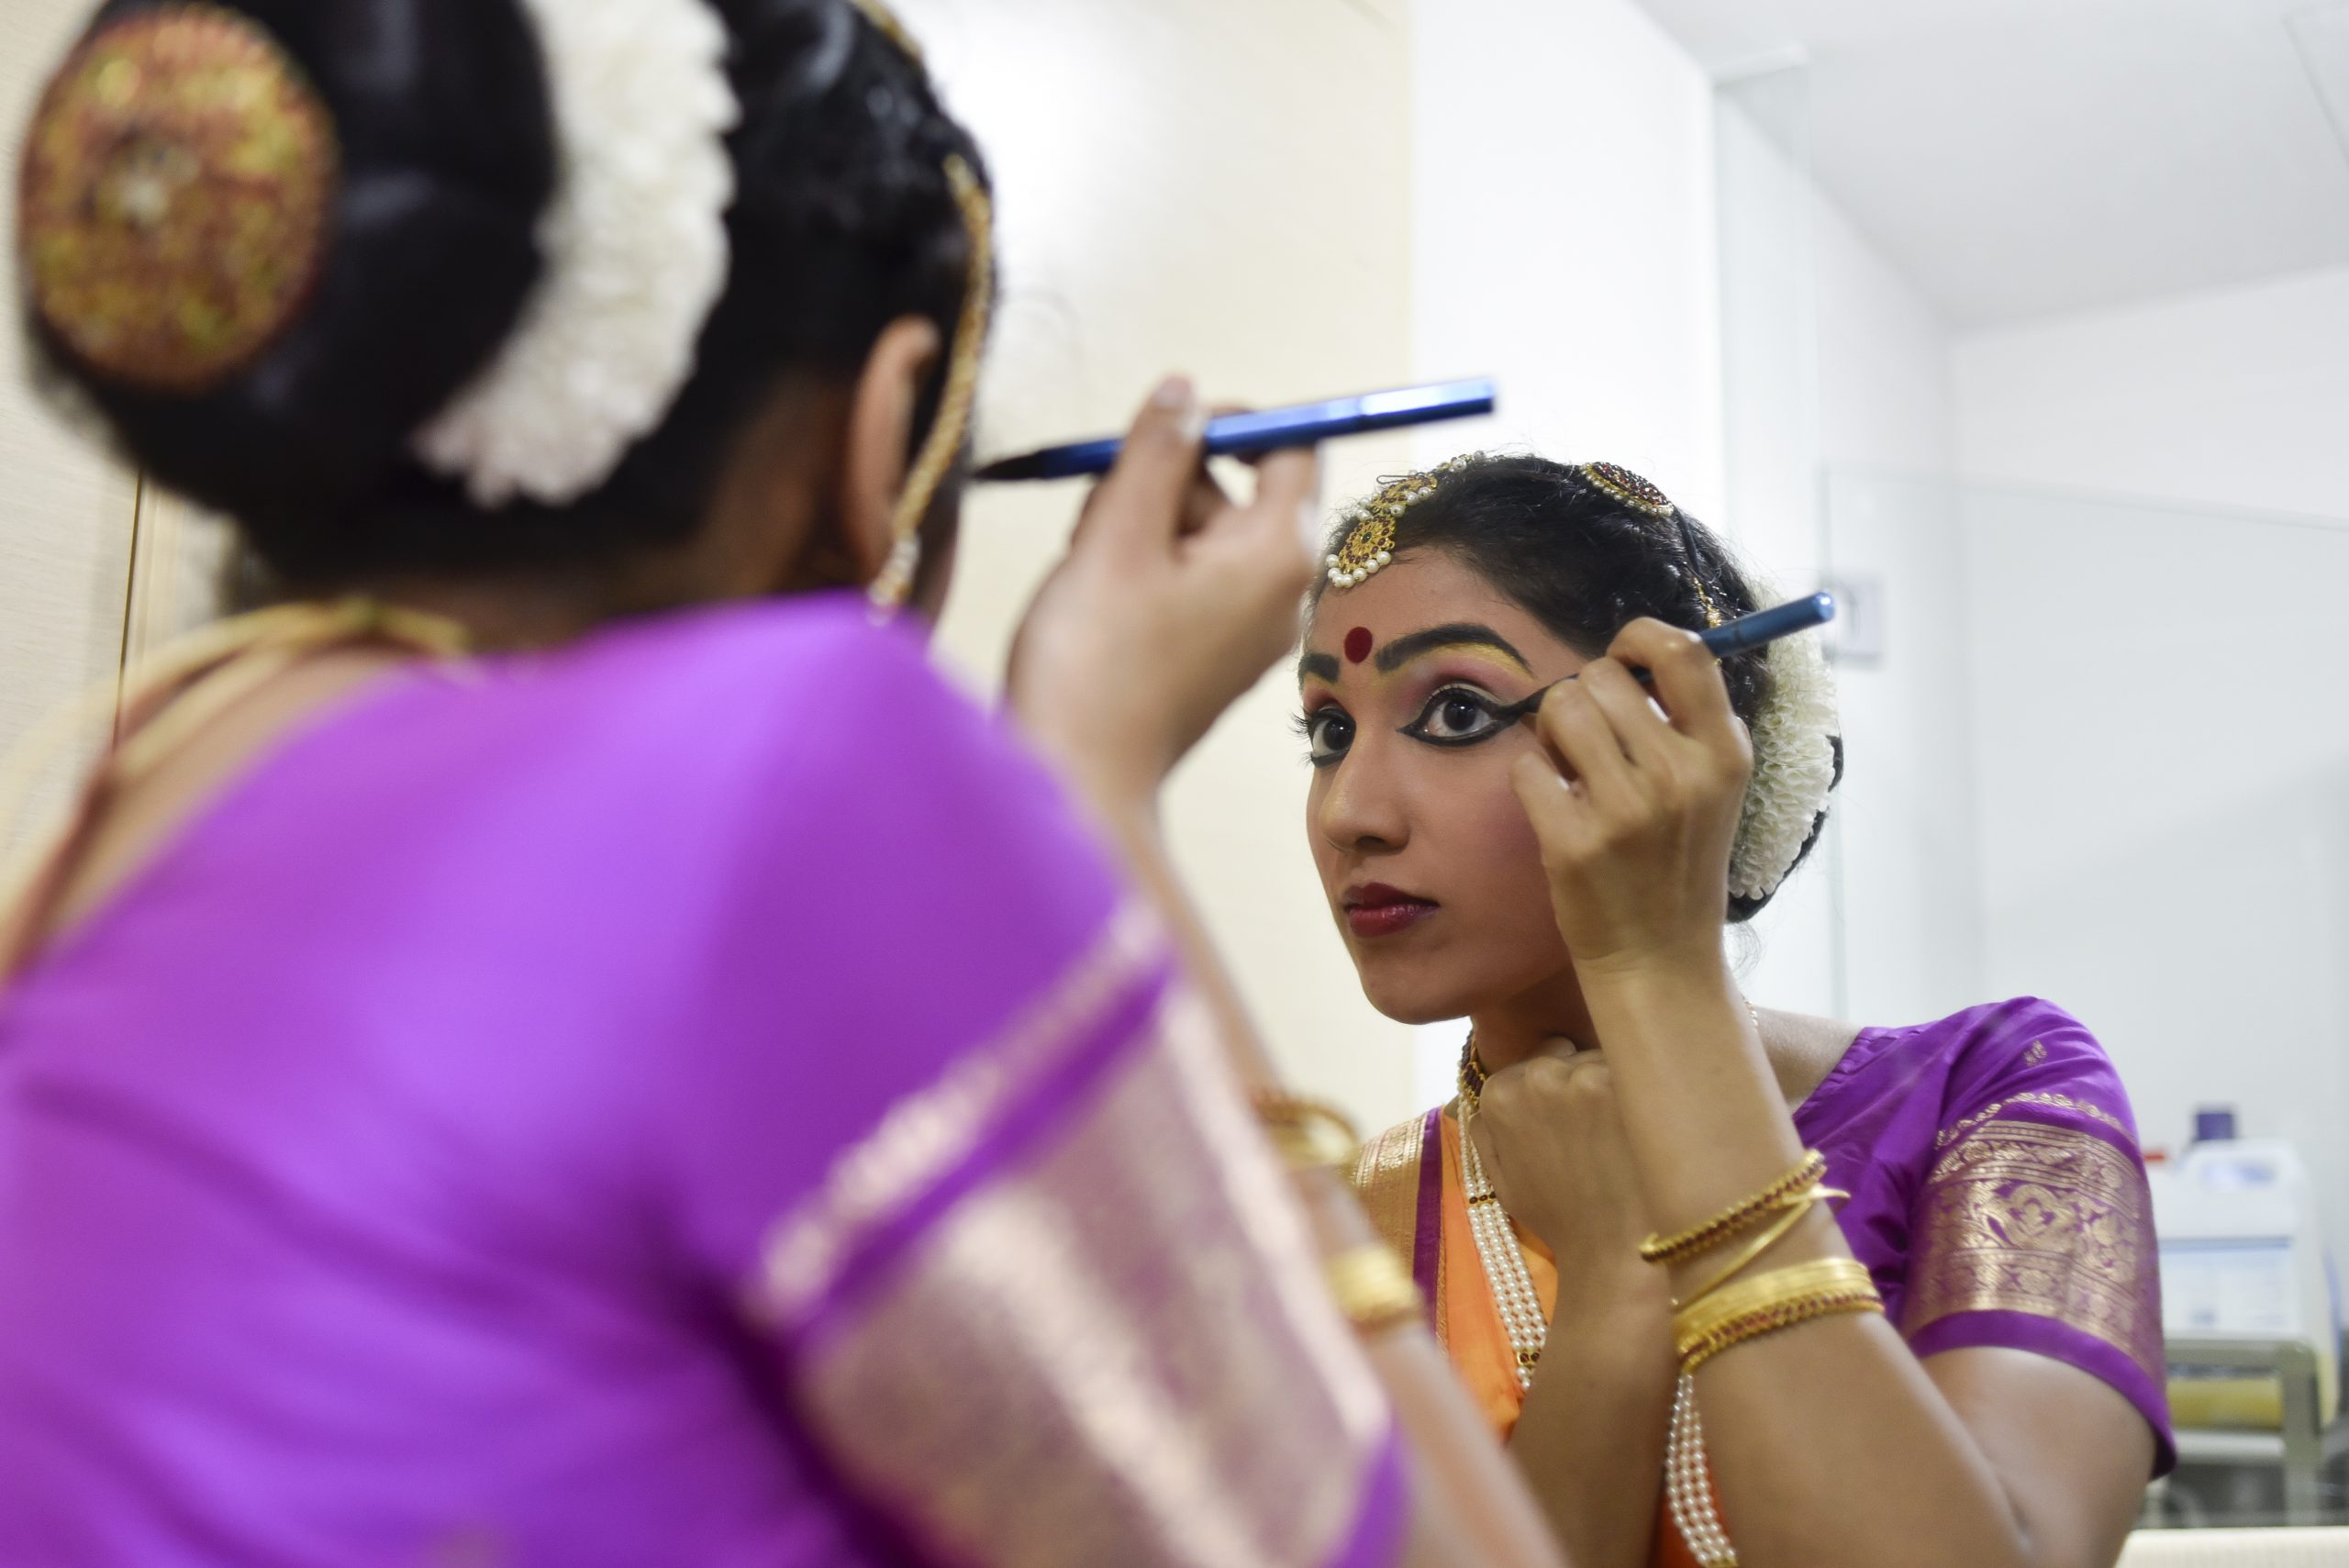 Ms Ahtherai Rashasegaran has been a company dancer with Bhaskar's Arts Academy for close to eight years. While she is grateful for the online classes, collaborating with musicians and getting choreography right takes a lot more time these days. Her show in July has been cancelled but she is hoping that the one in early October will still go as planned. Photo by: Caroline Chia